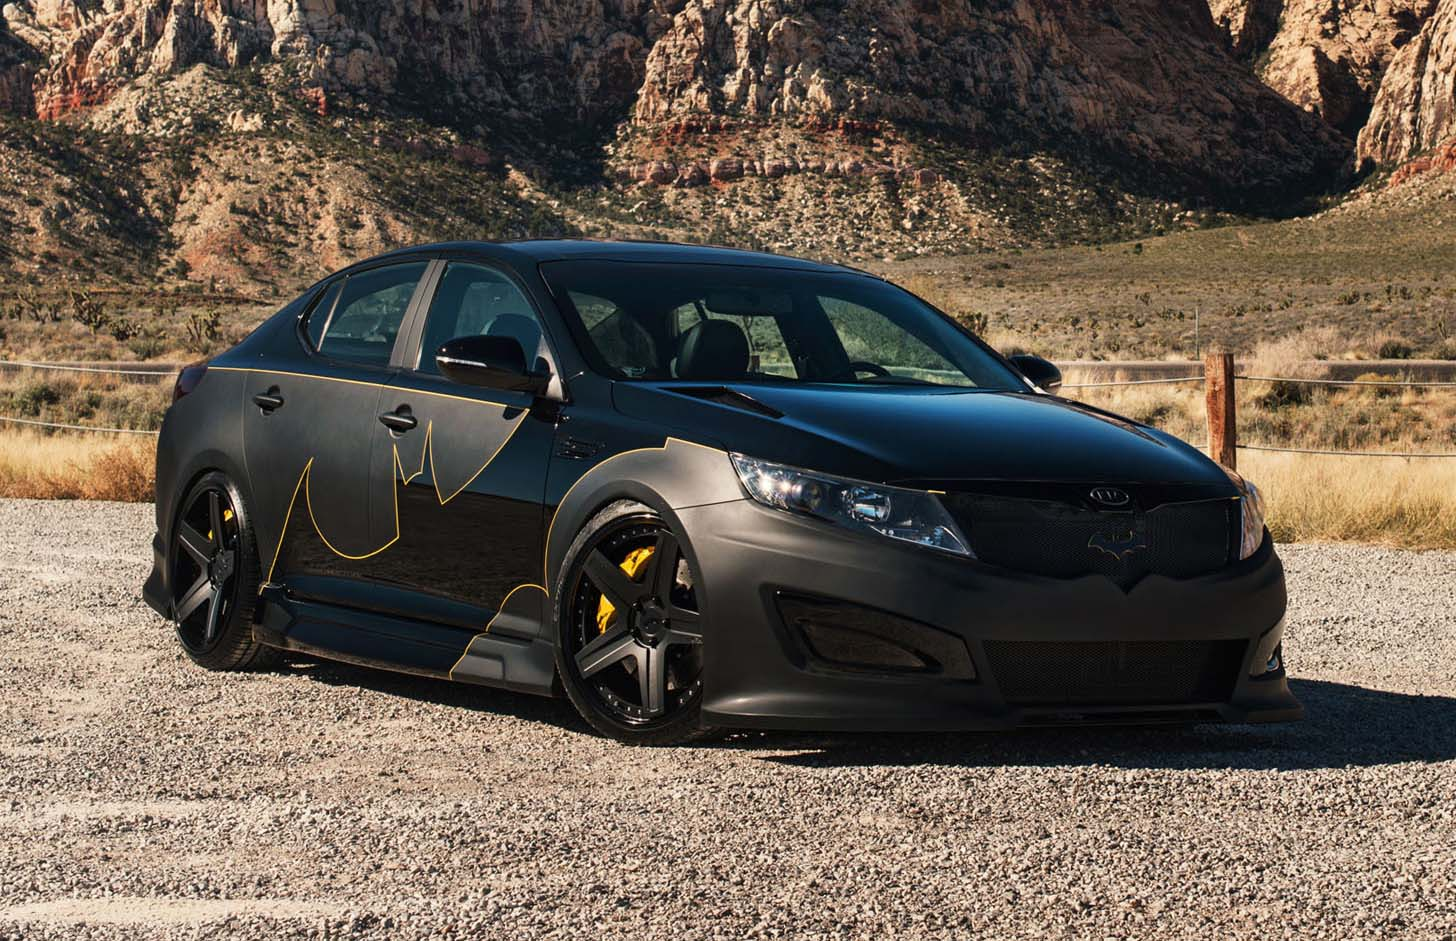 20121128131201Batman_Car